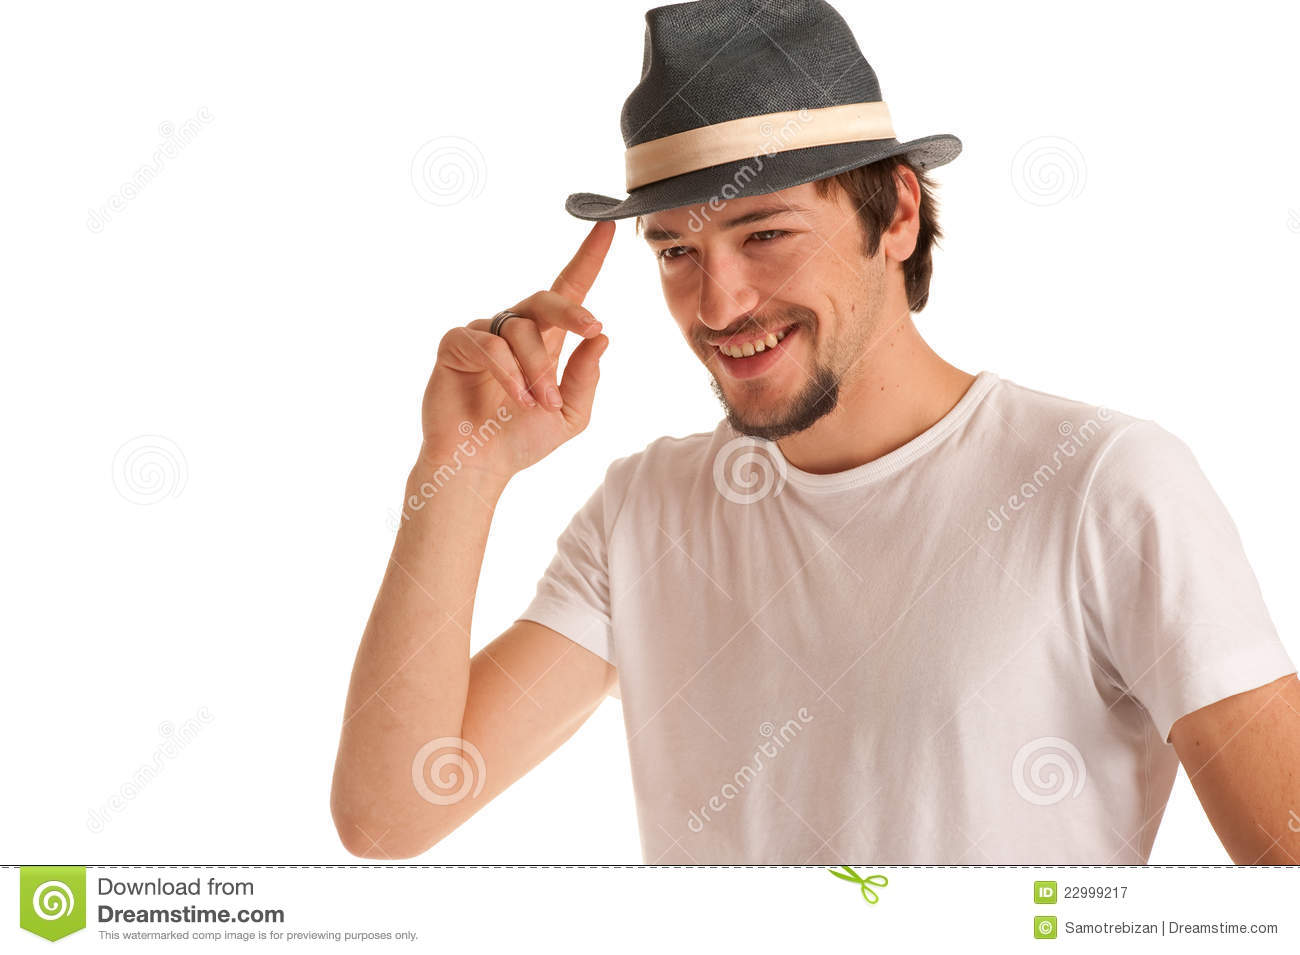 Cute Guy With A Hat On A Head Stock Image - Image of happy b6ad94a6b58